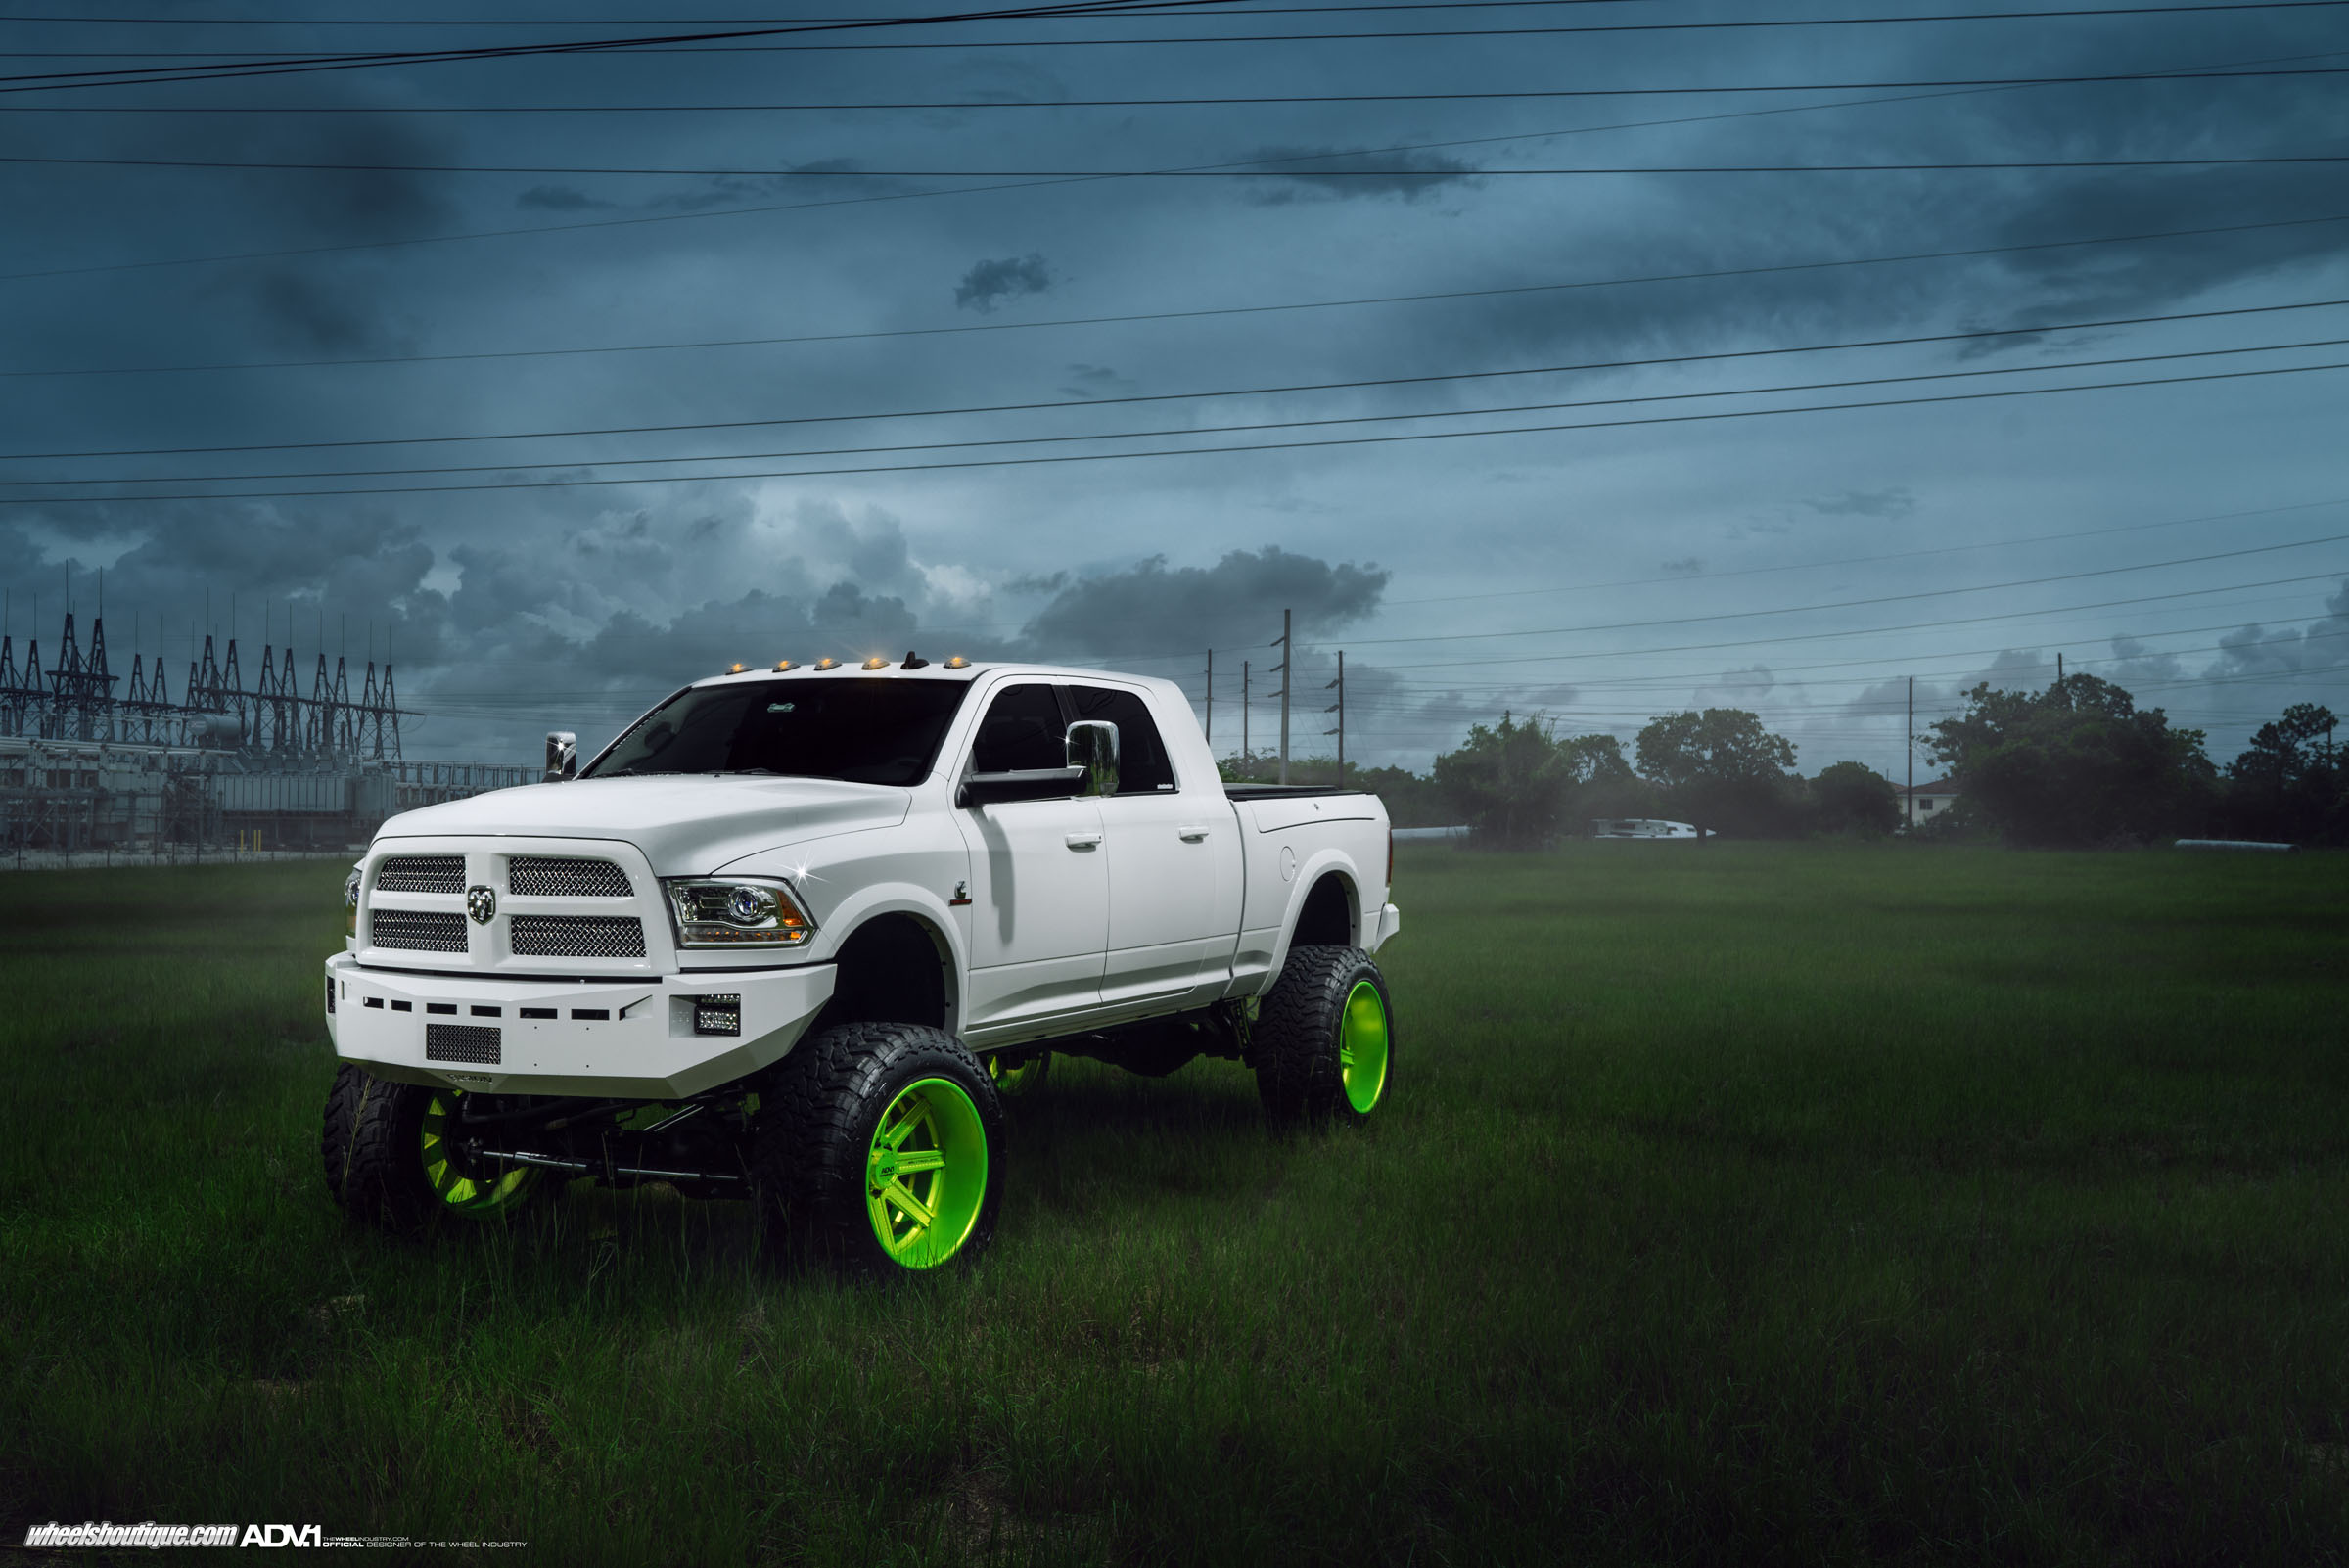 ADV1-dodge-Ram-2500-hd-rims-Lifted-cummins-4x4-forged-K